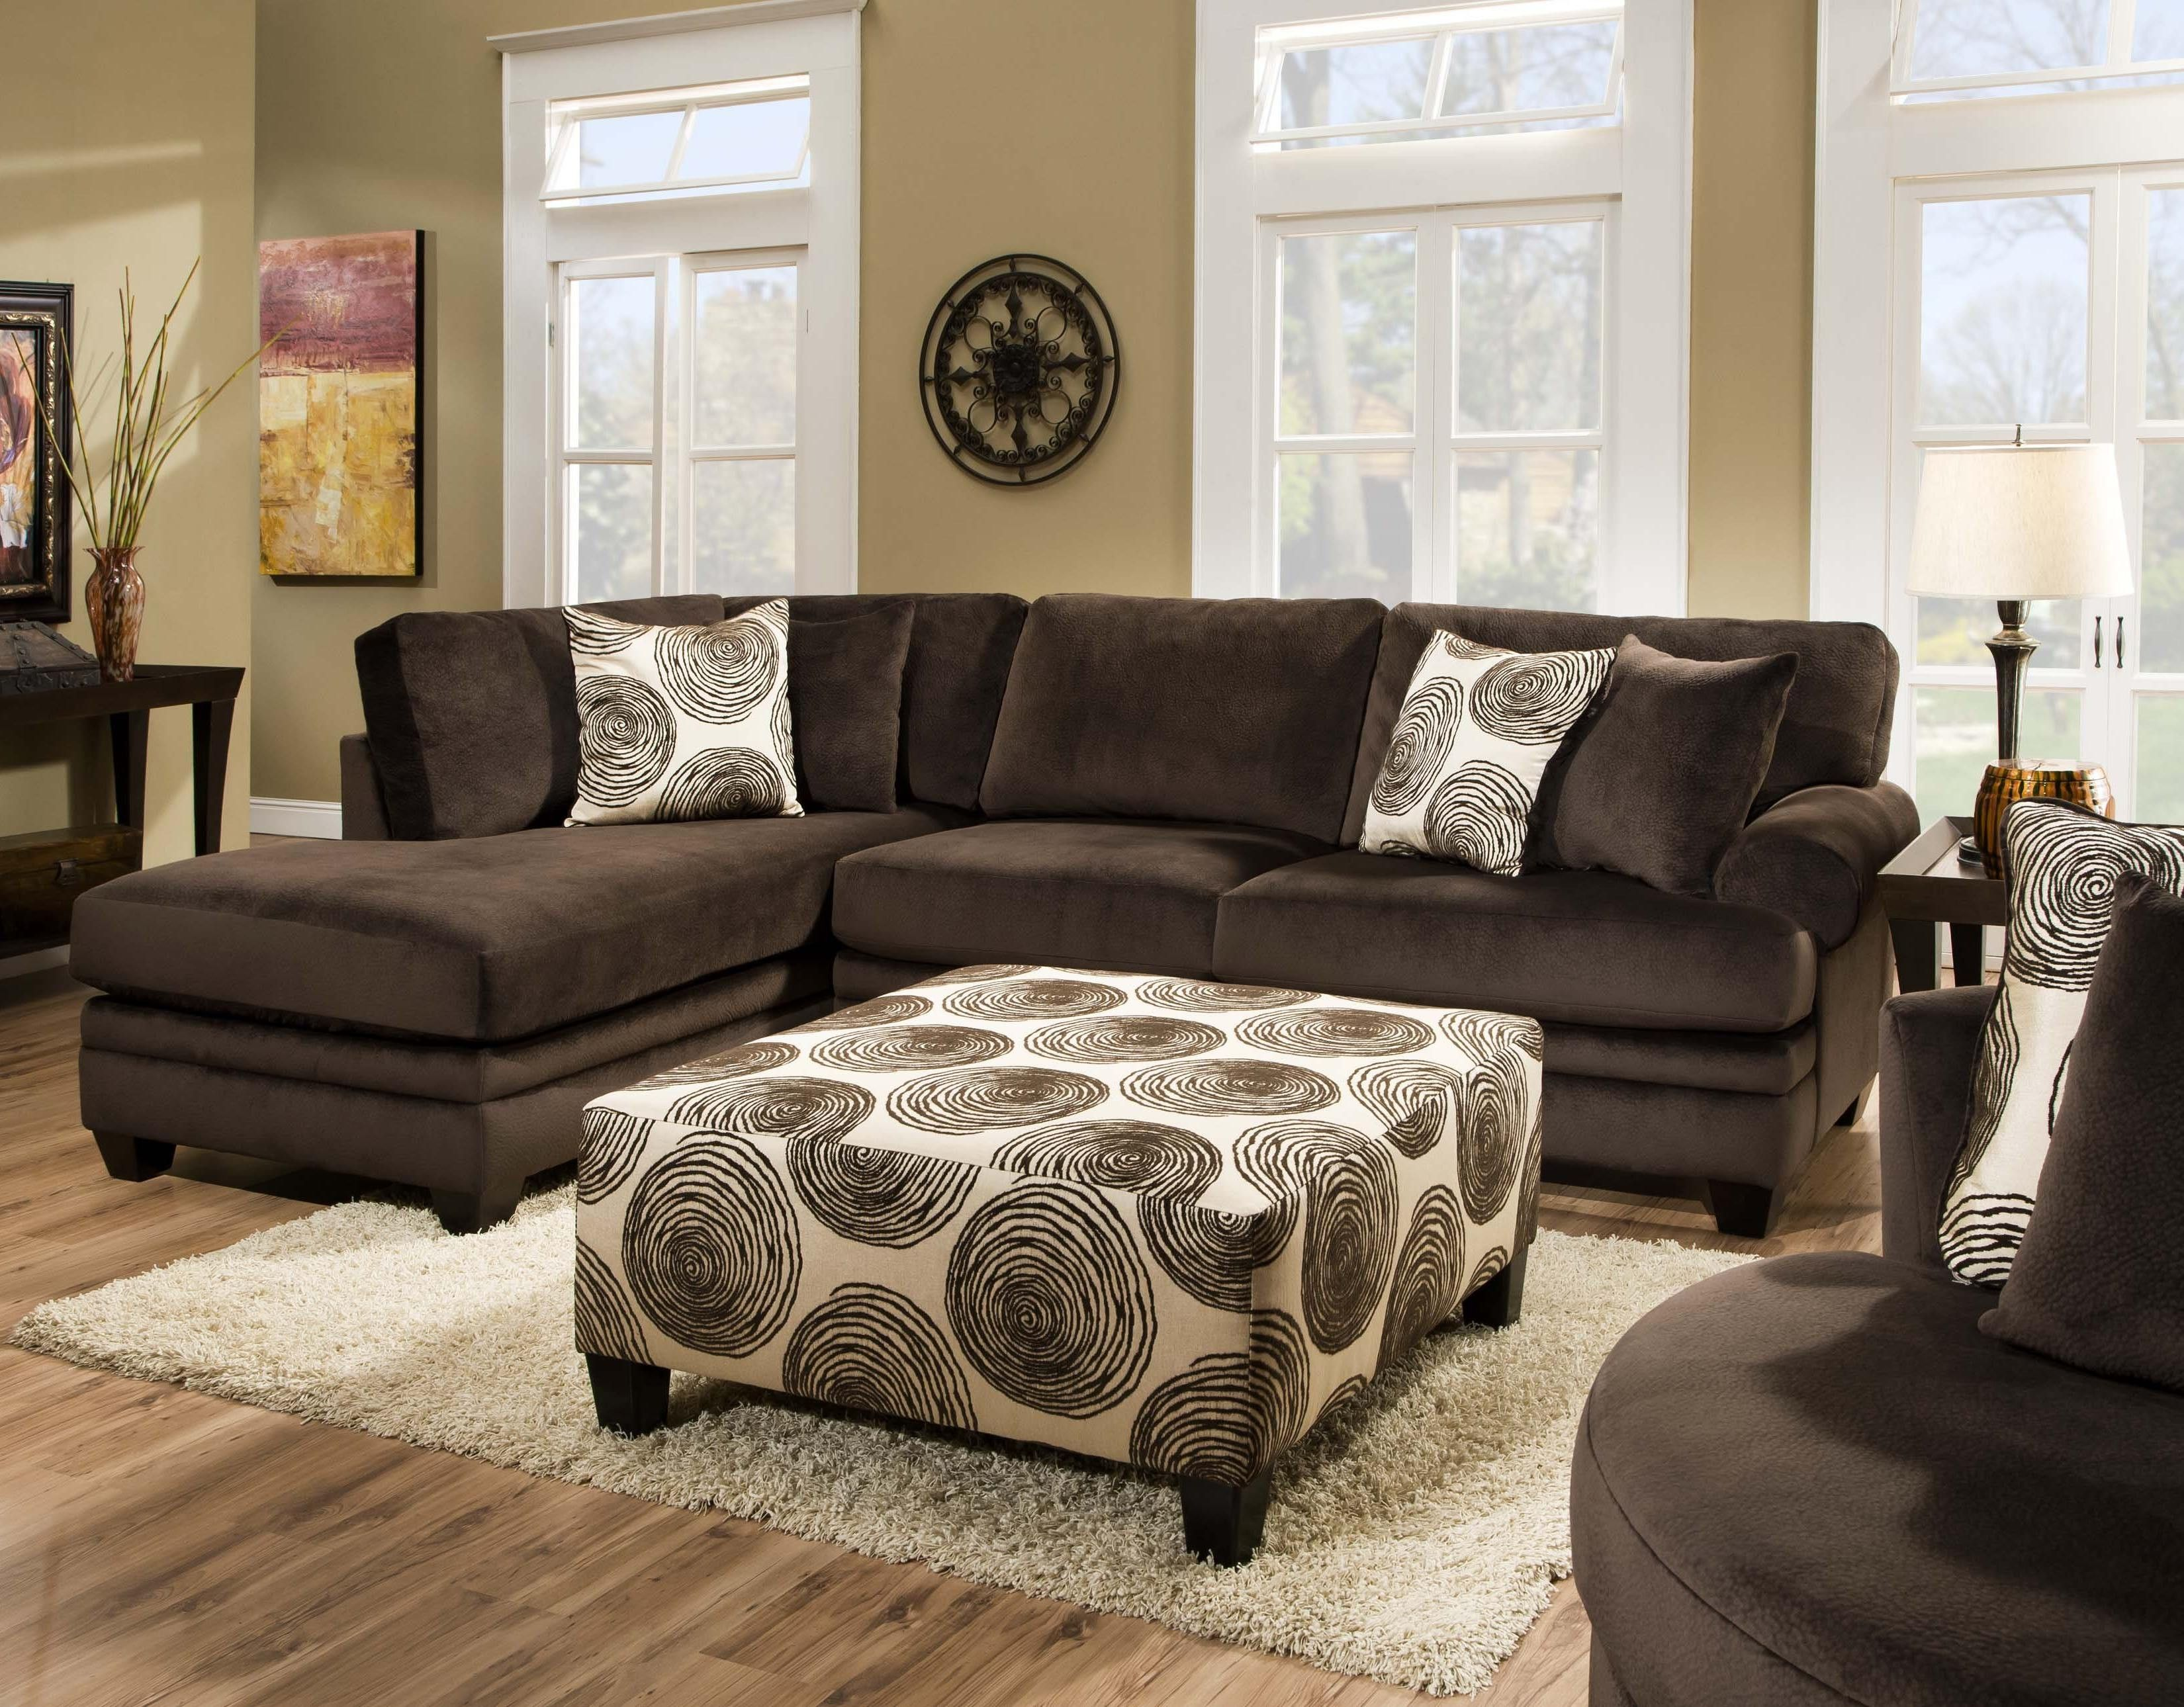 Albany 8642 Sectional LAF Chaise and RAF Sofa by Albany for